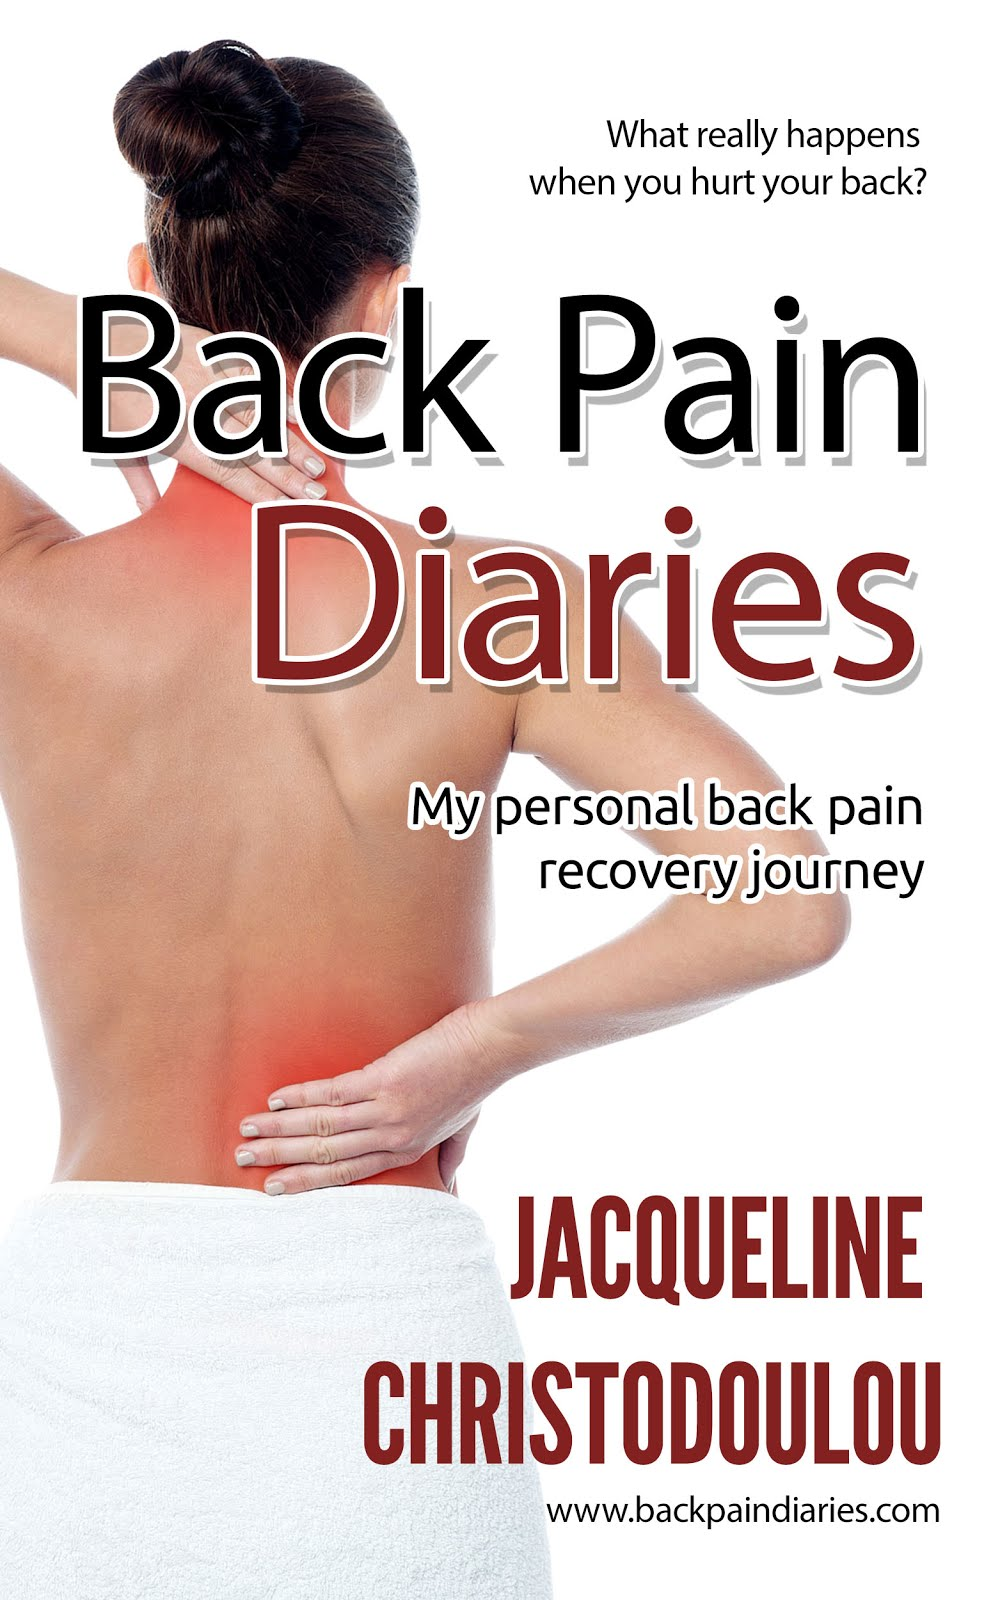 Back Pain Diaries - full diary of my back pain recovery journey